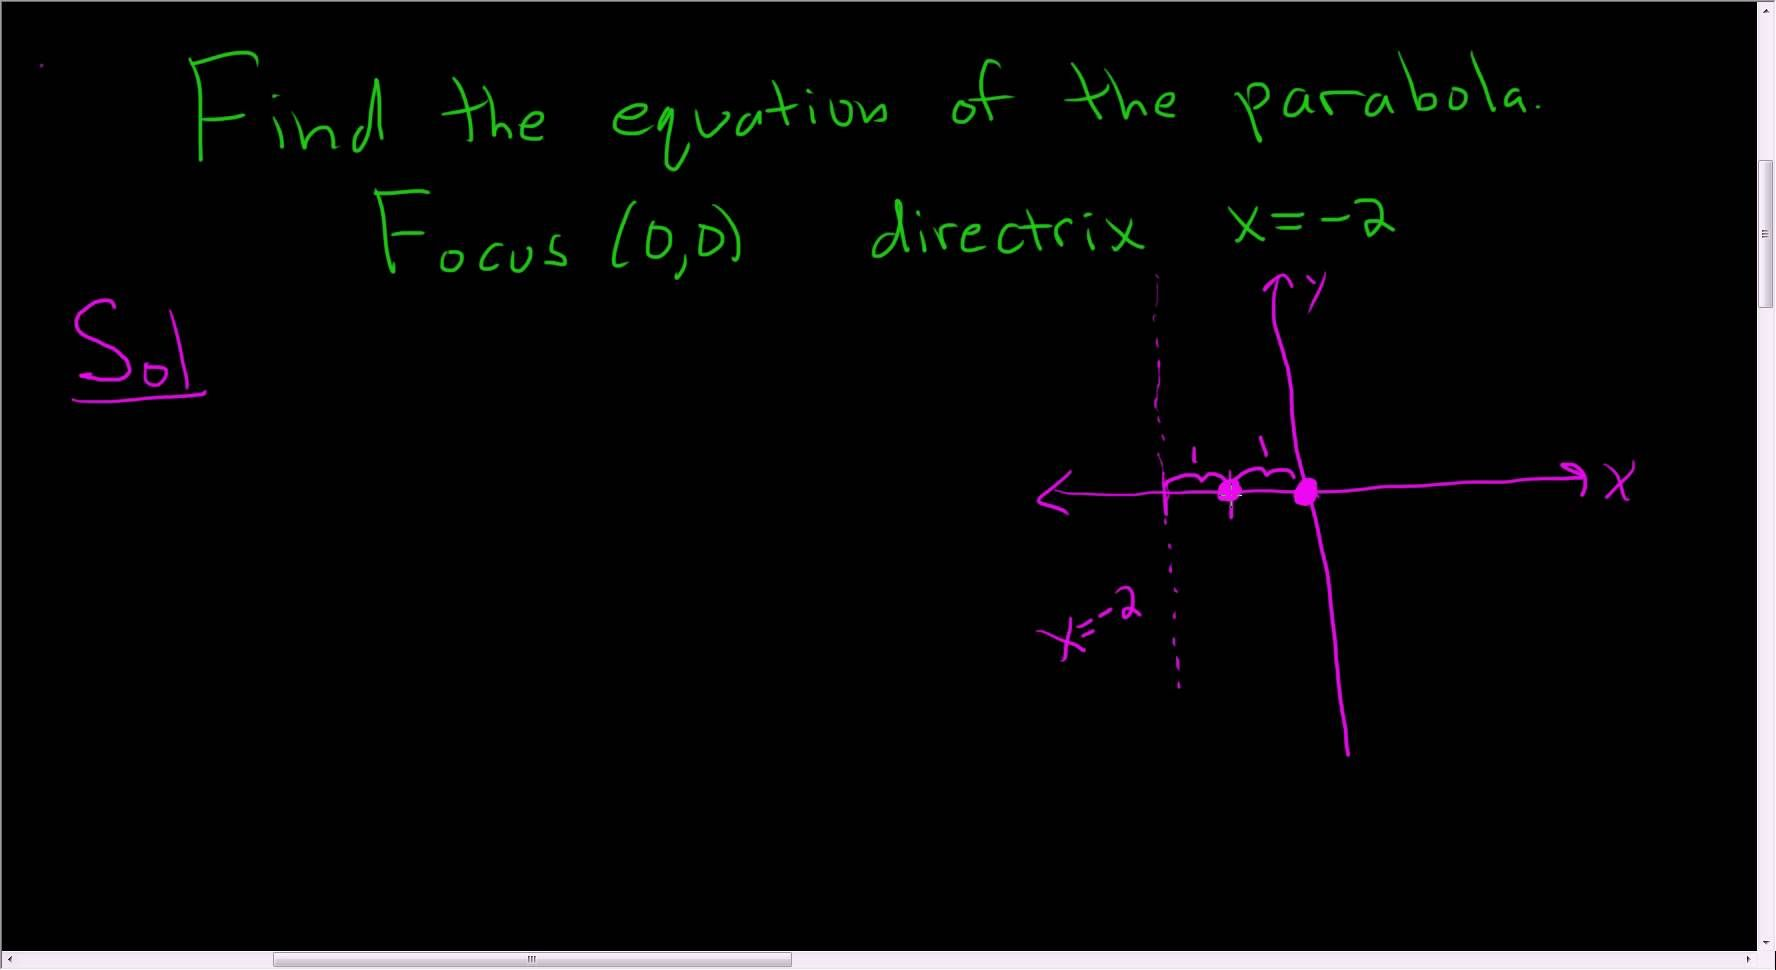 Finding The Equation Of The Parabola Given The Focus And